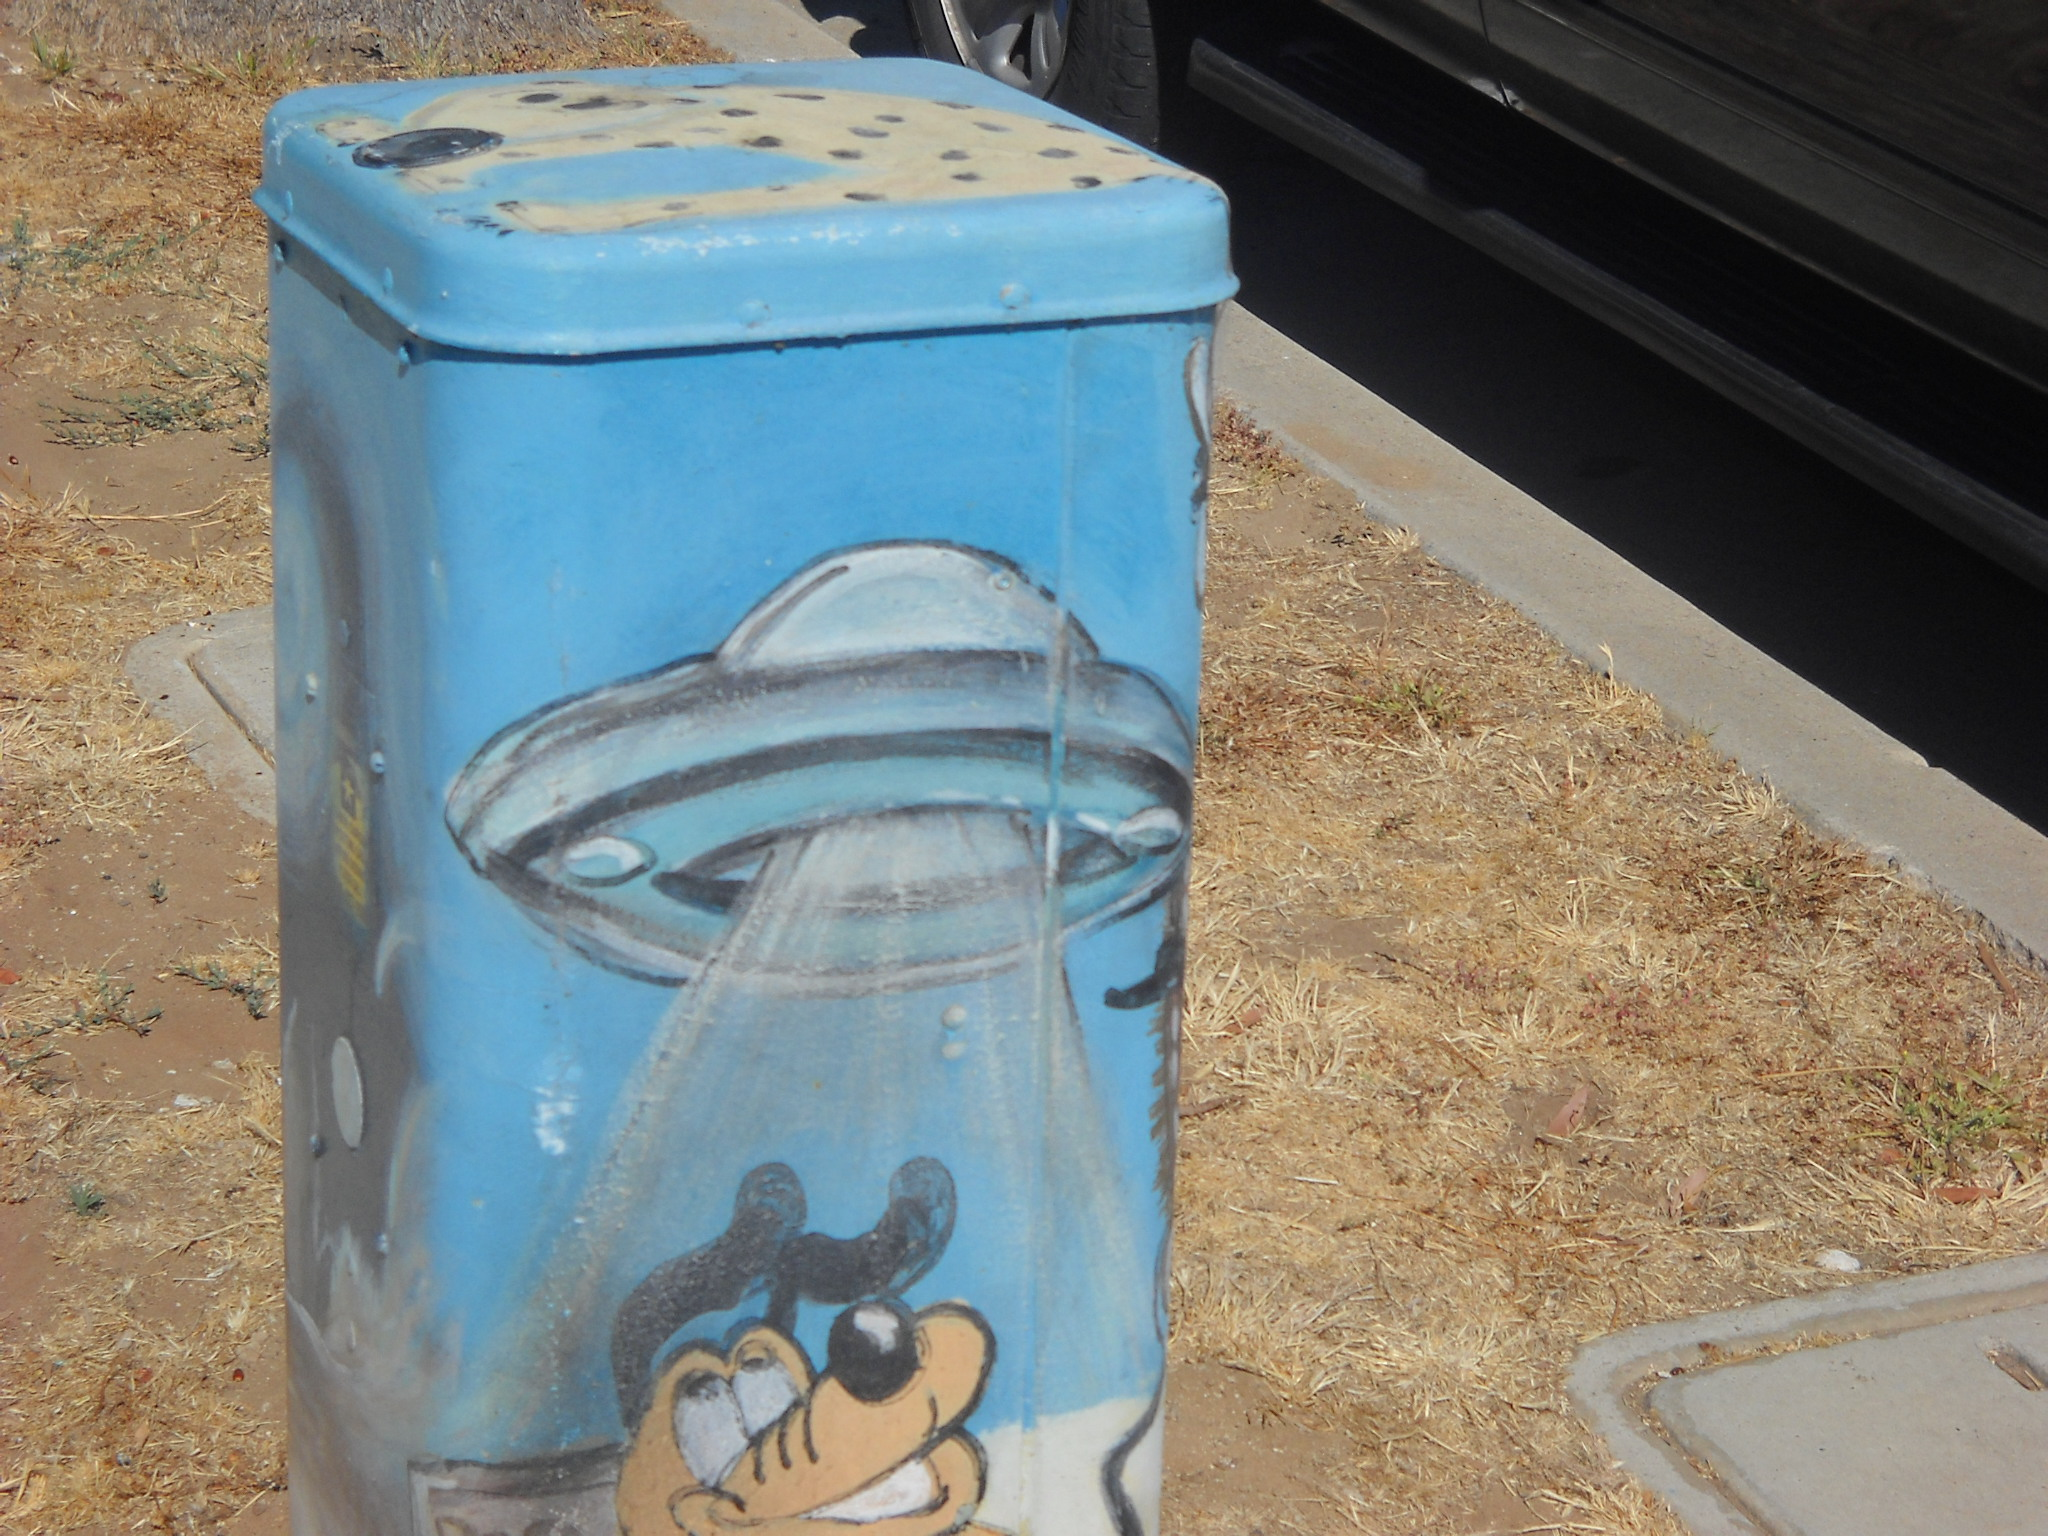 West Pt. Loma Blvd. utility box art..other-worldly!